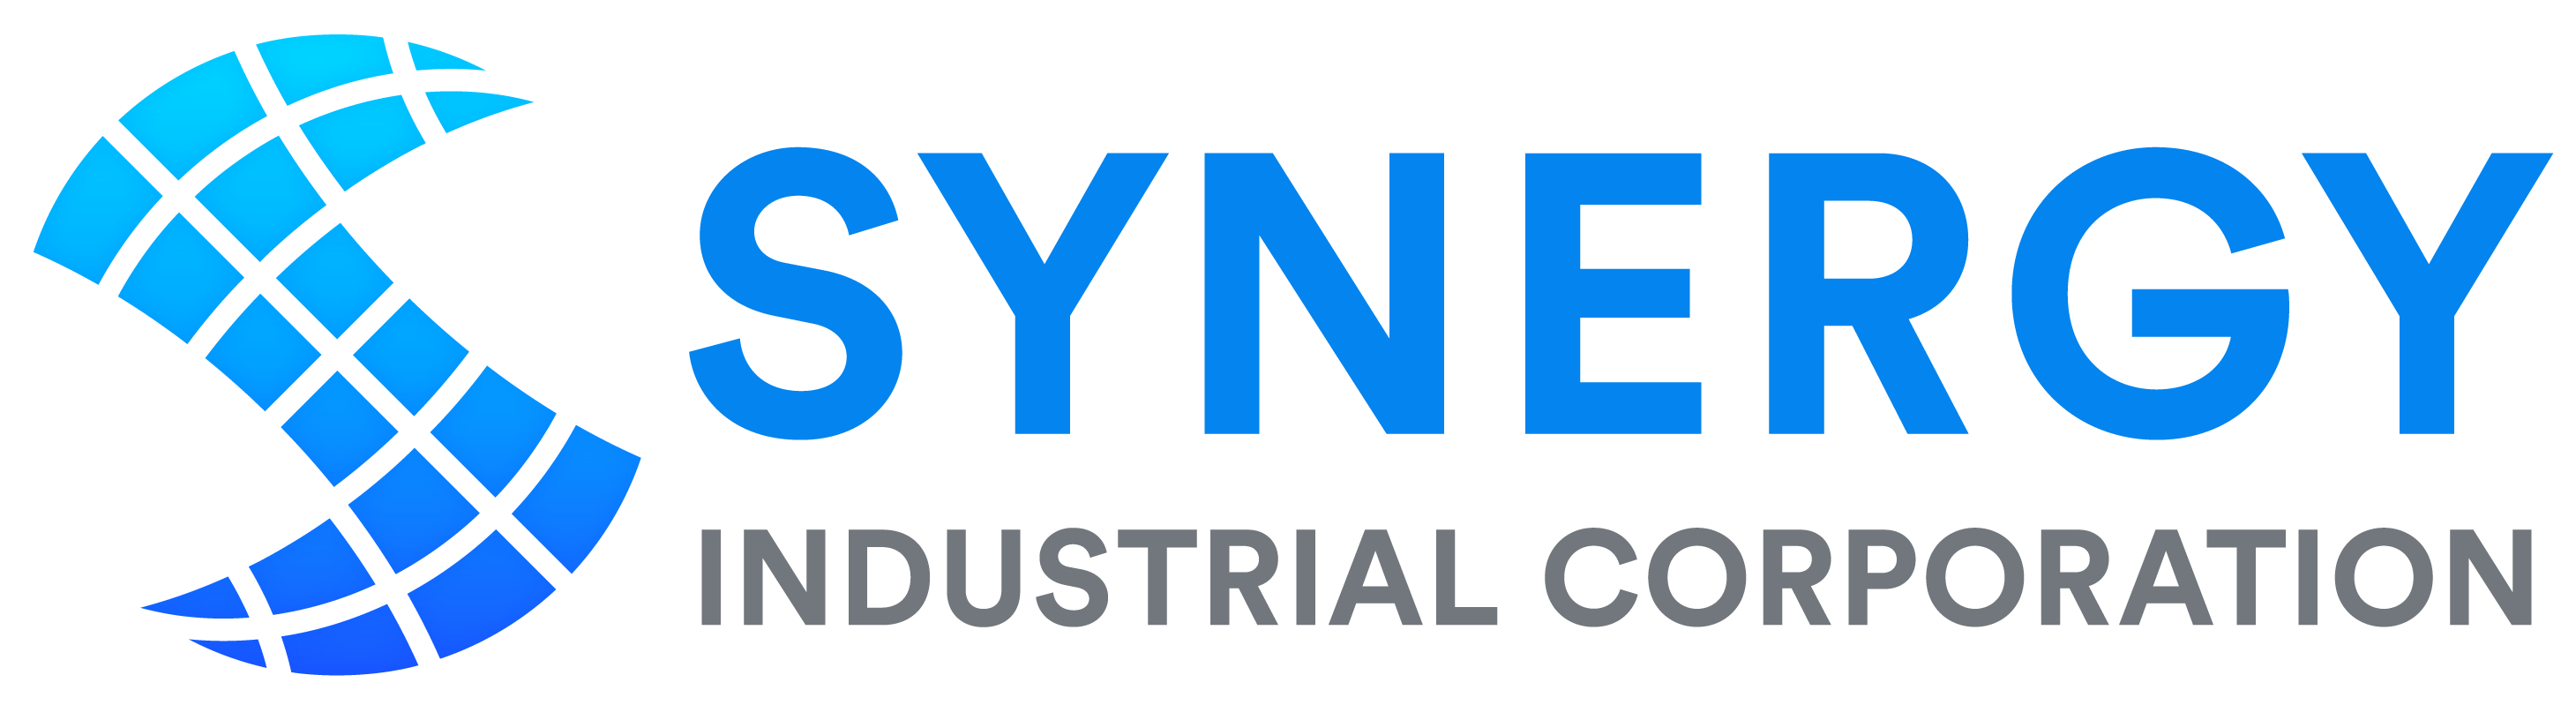 Synergy Industrial Corporation